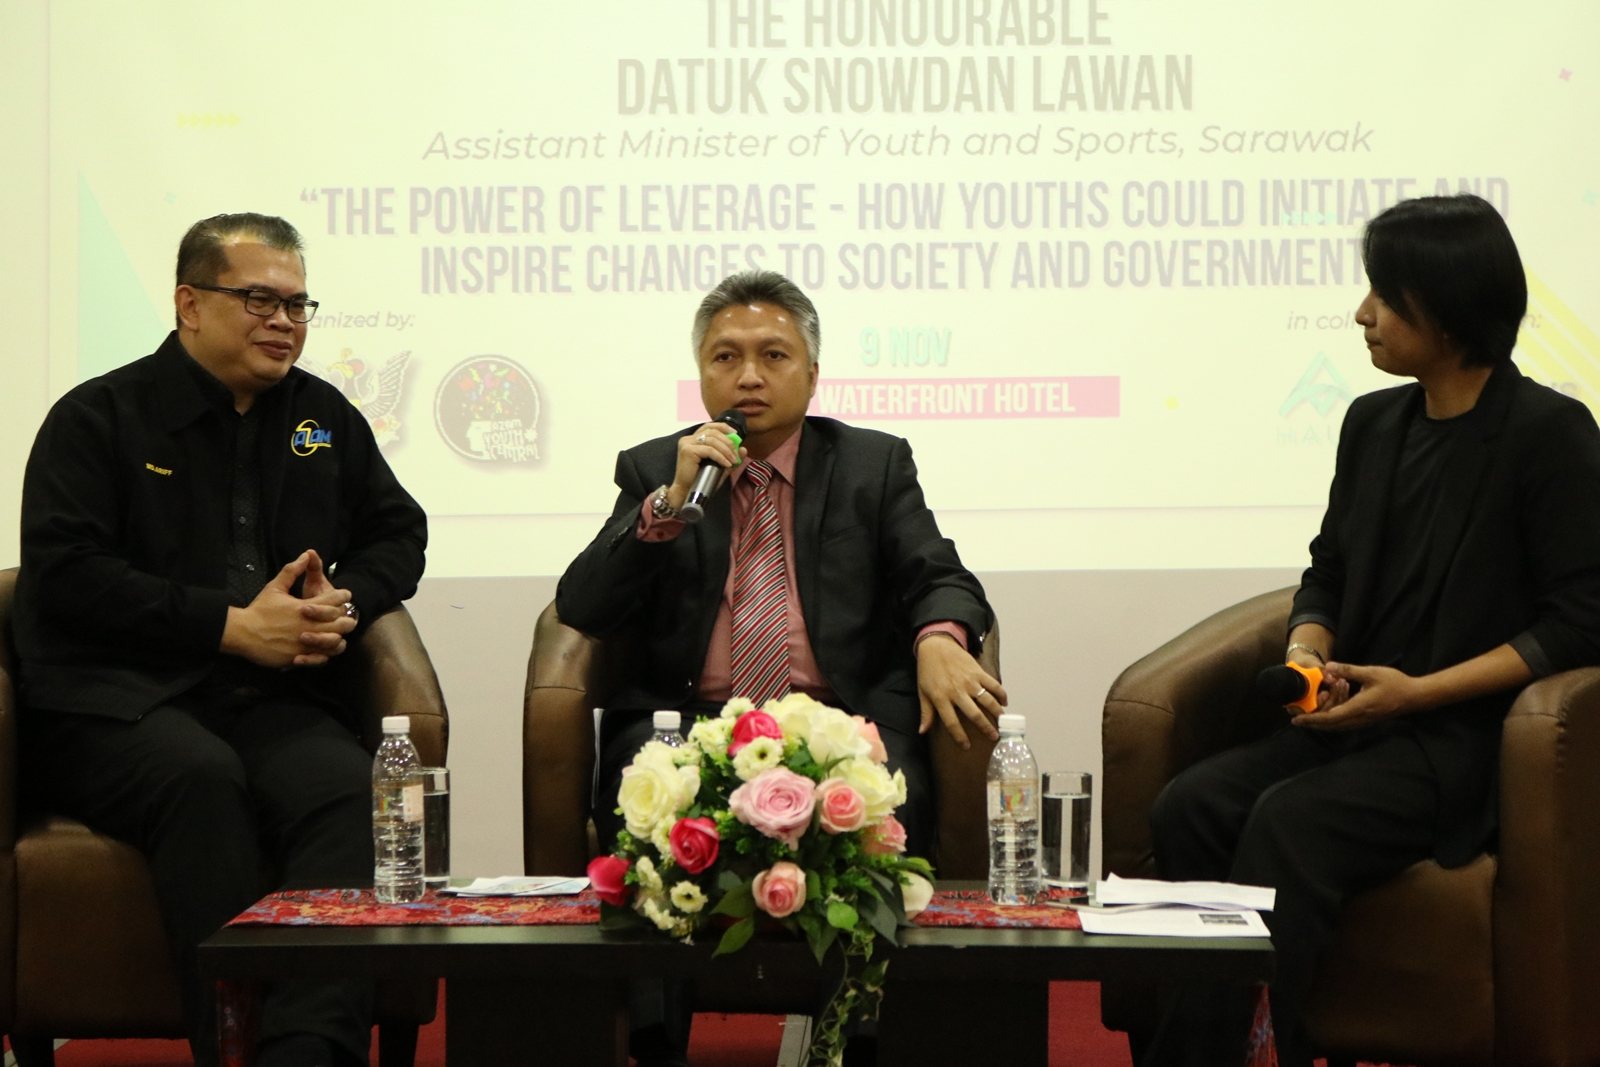 Datuk Snowdan Lawan (centre) speaking during the interactive session on the opportunities and challenges for the youth in the digital economy as moderator Seph Haini (right) and AZAM Sarawak Honorary Secretary Mohamad Ariff Irwani Azahari look on.